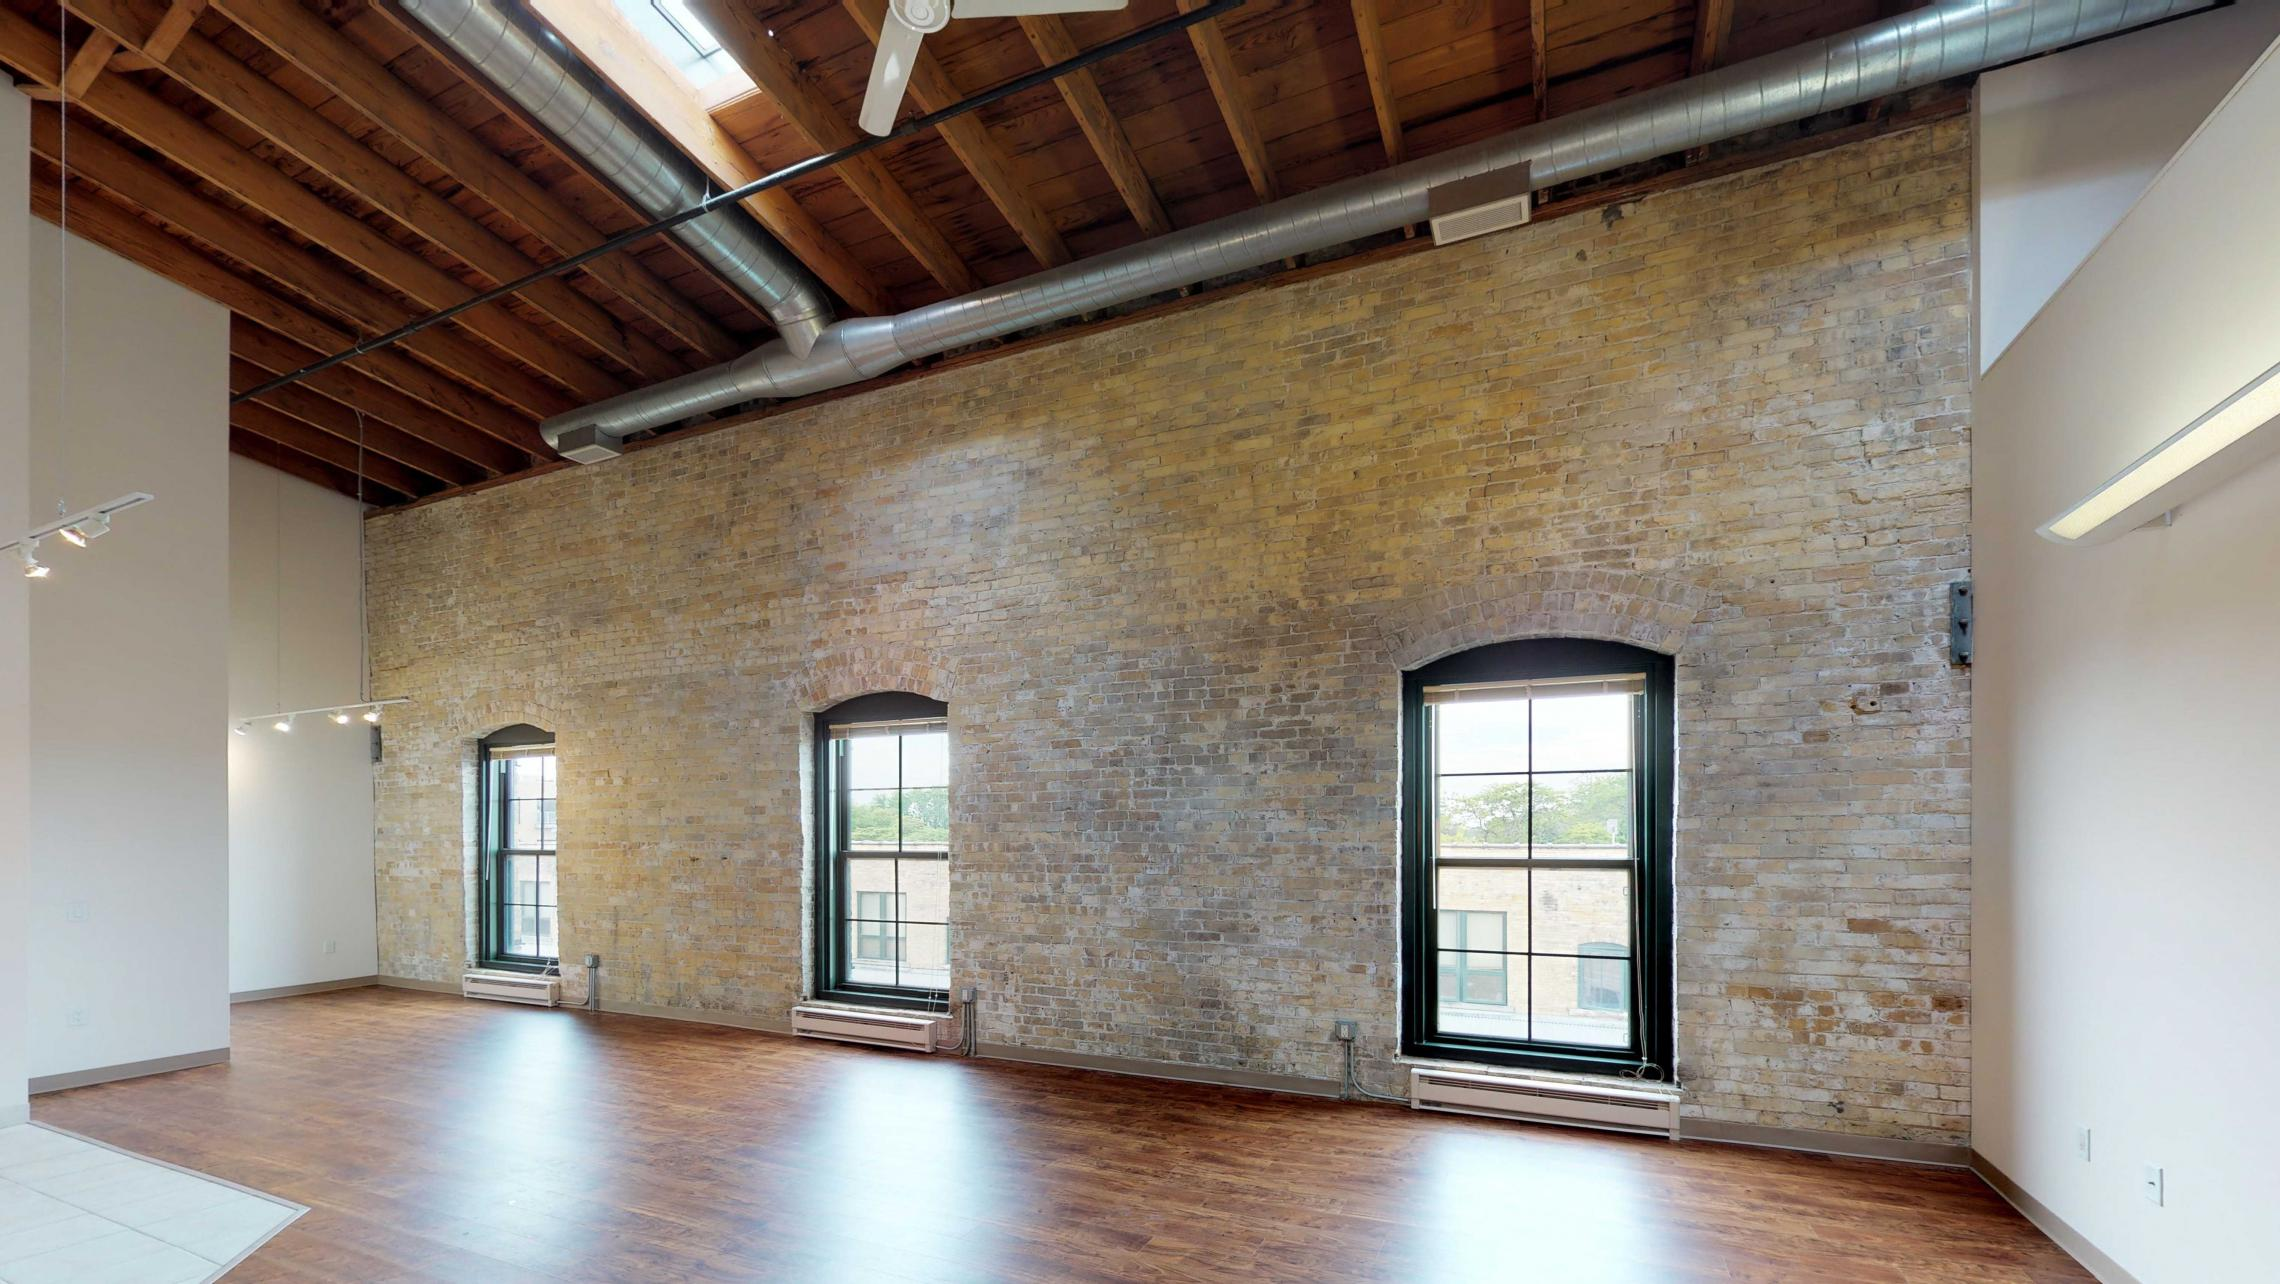 Tobacco-Lofts-Apartment-E306-Lofted-Two-Bedroom-Downtown-Madison-Exposures-Design-Historic-Yards